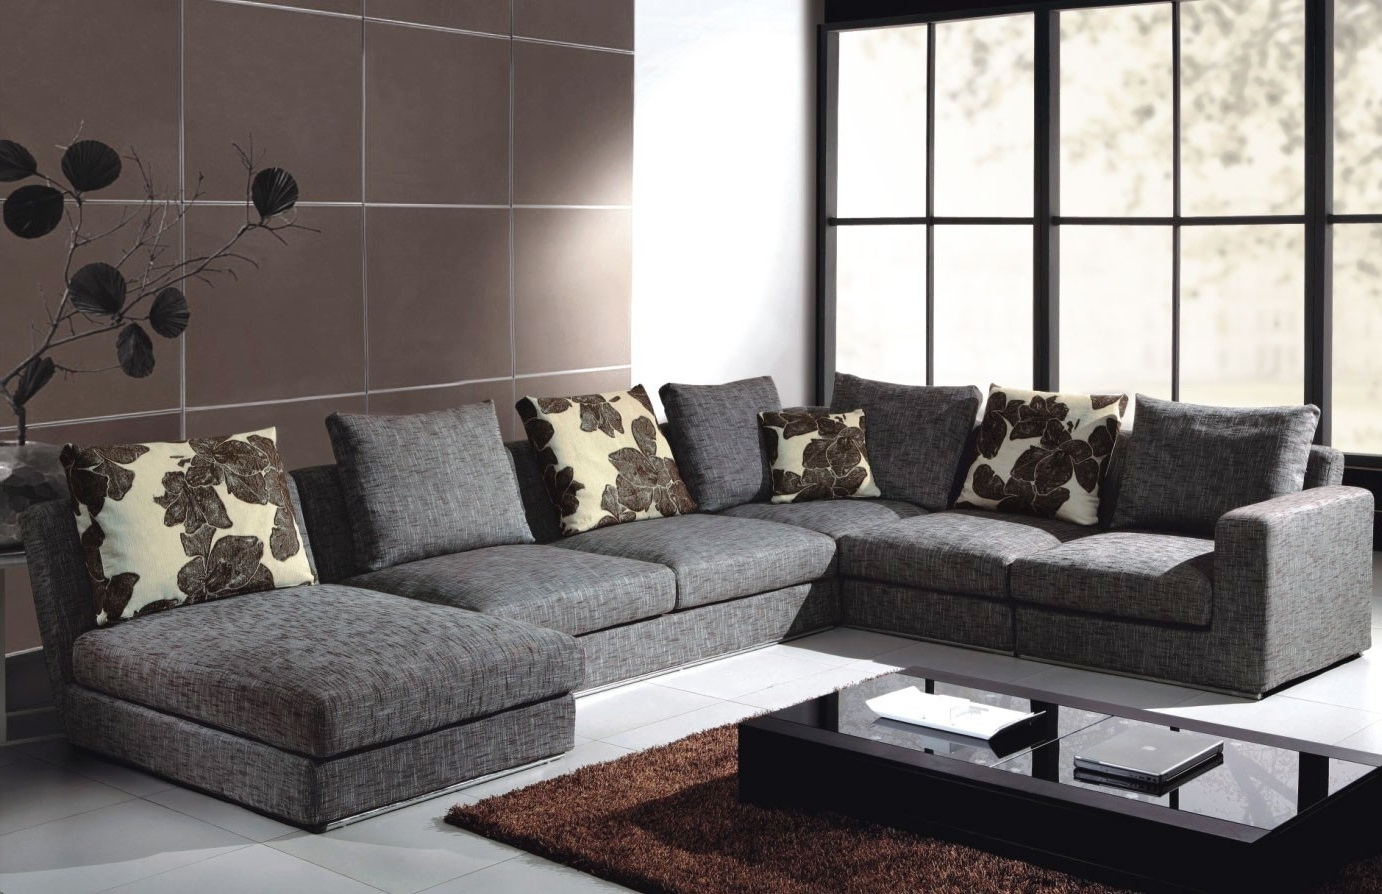 Berkline Sectional Sofas Within Newest Ideas For Disassemble A Berkline Sectional — Umpquavalleyquilters (View 16 of 20)